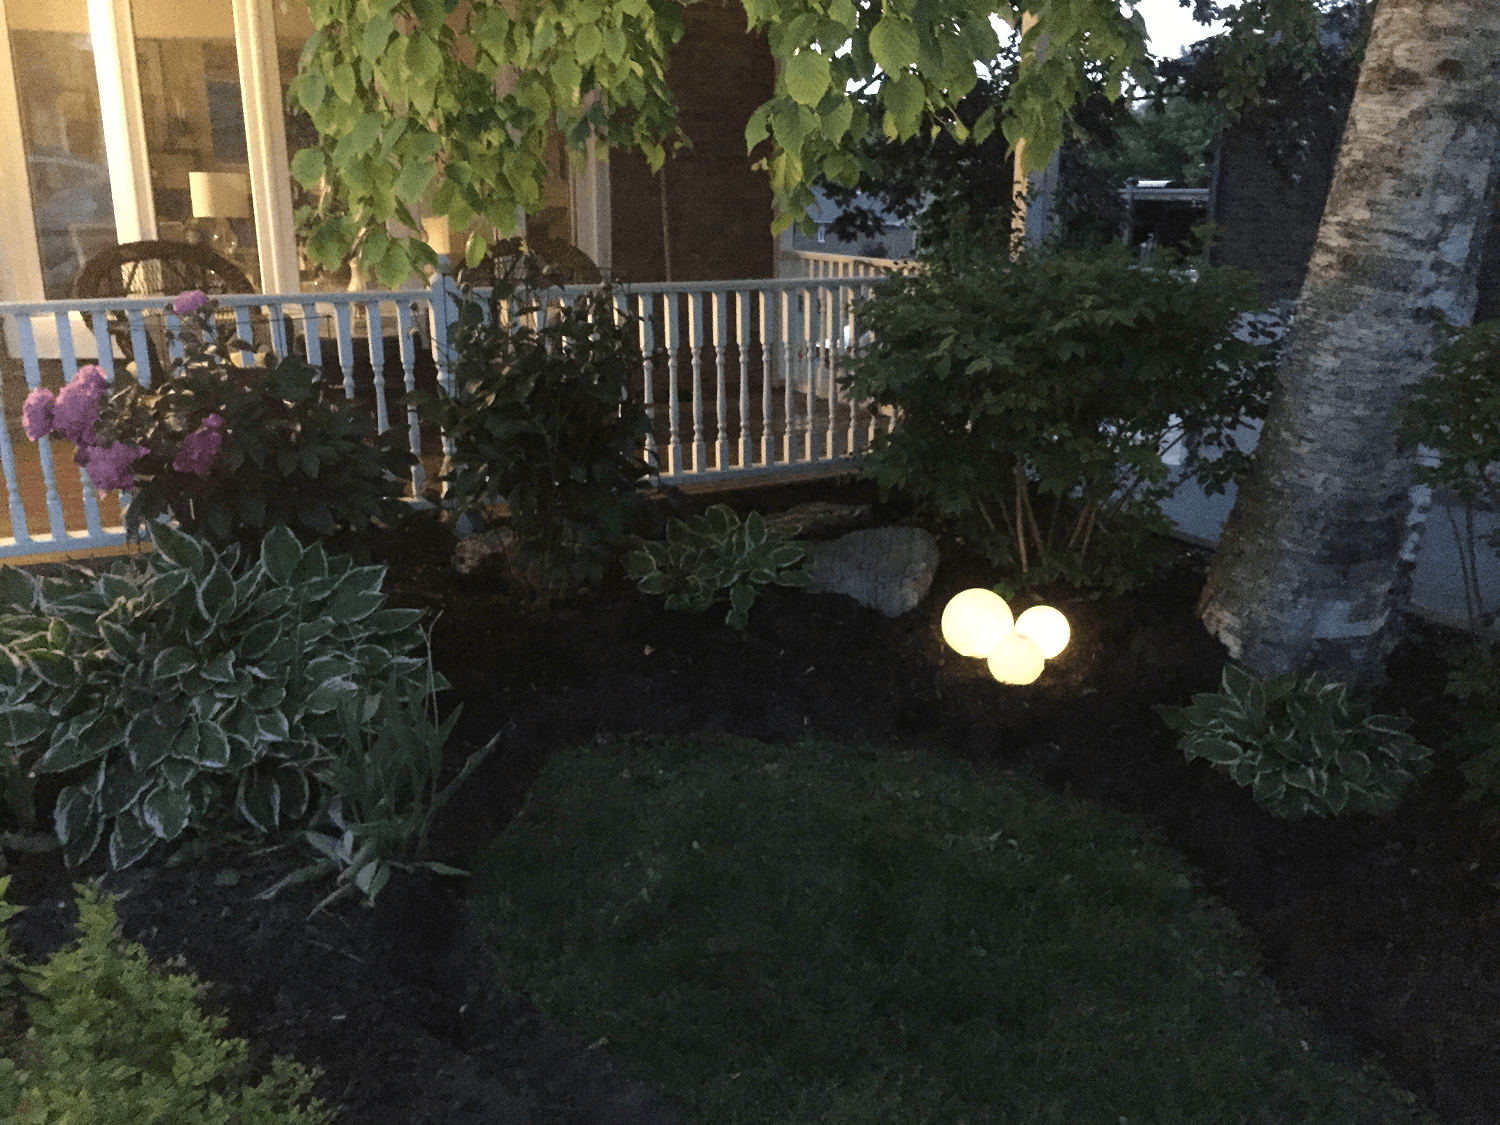 Glowing orb lighting front porch